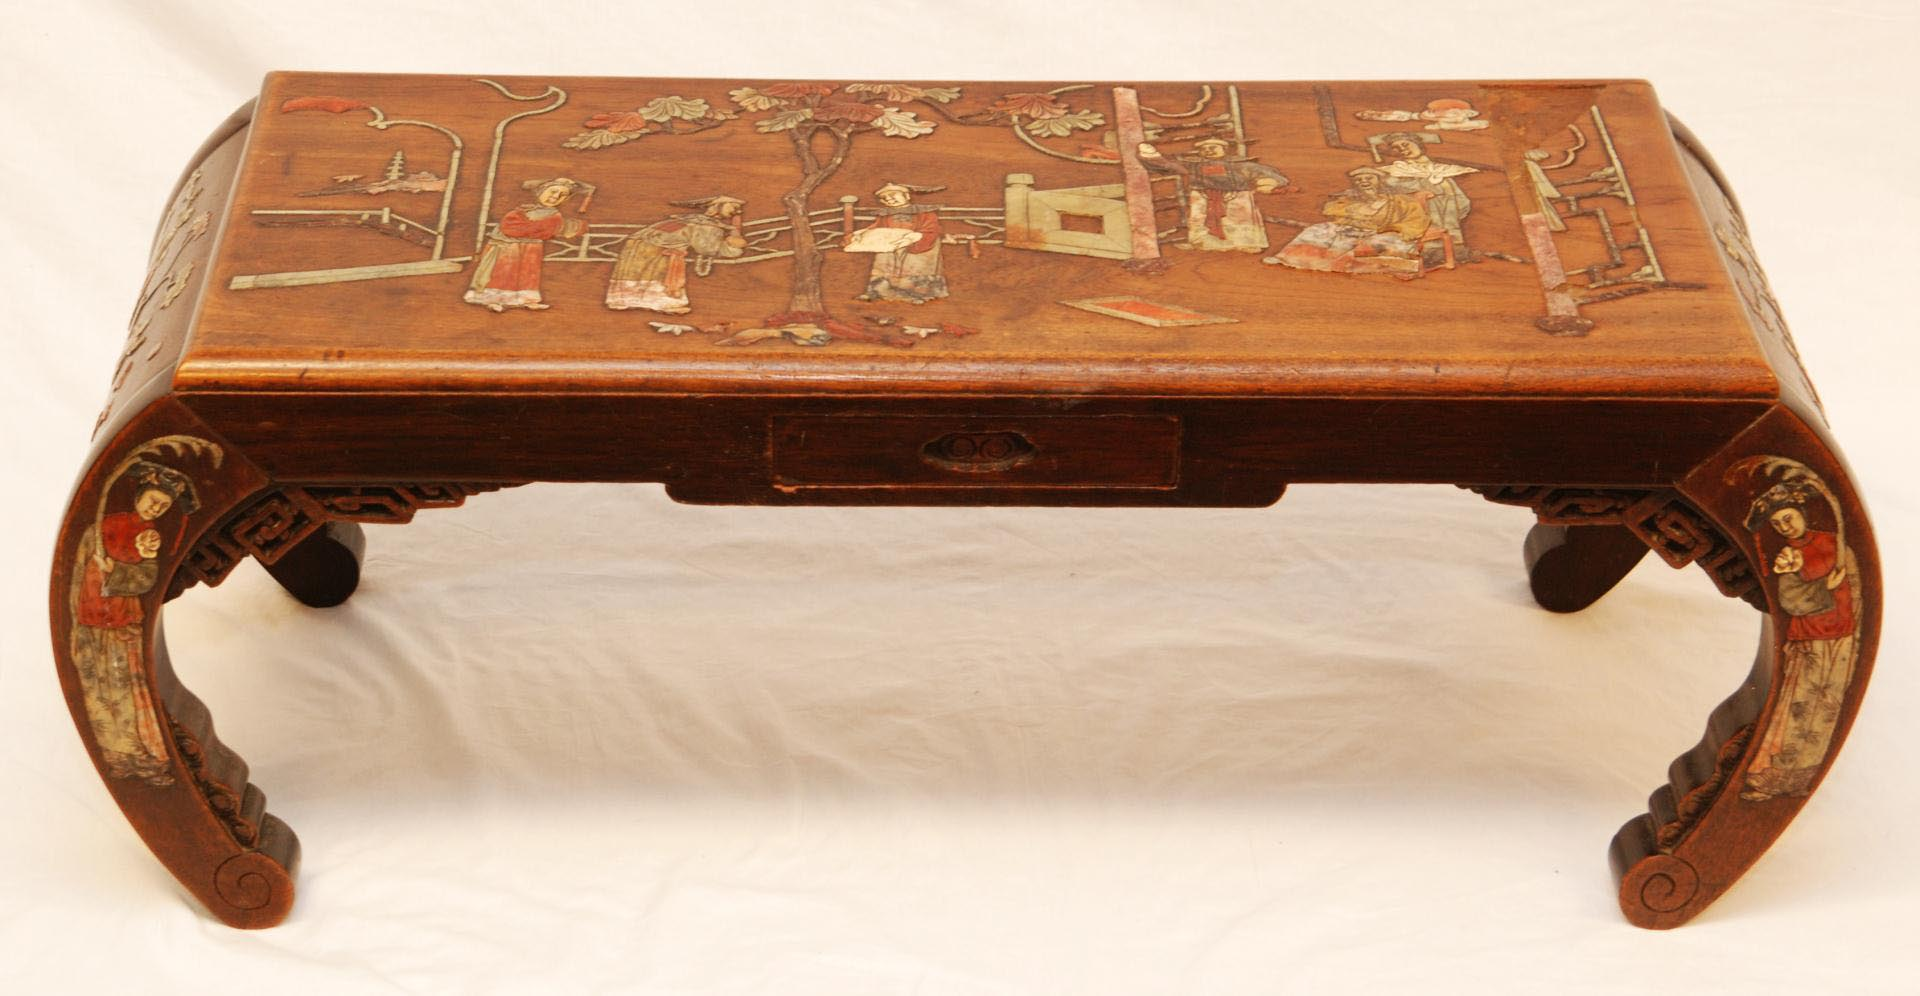 Antique Chinese Coffee Table Coffee Table Design Ideas